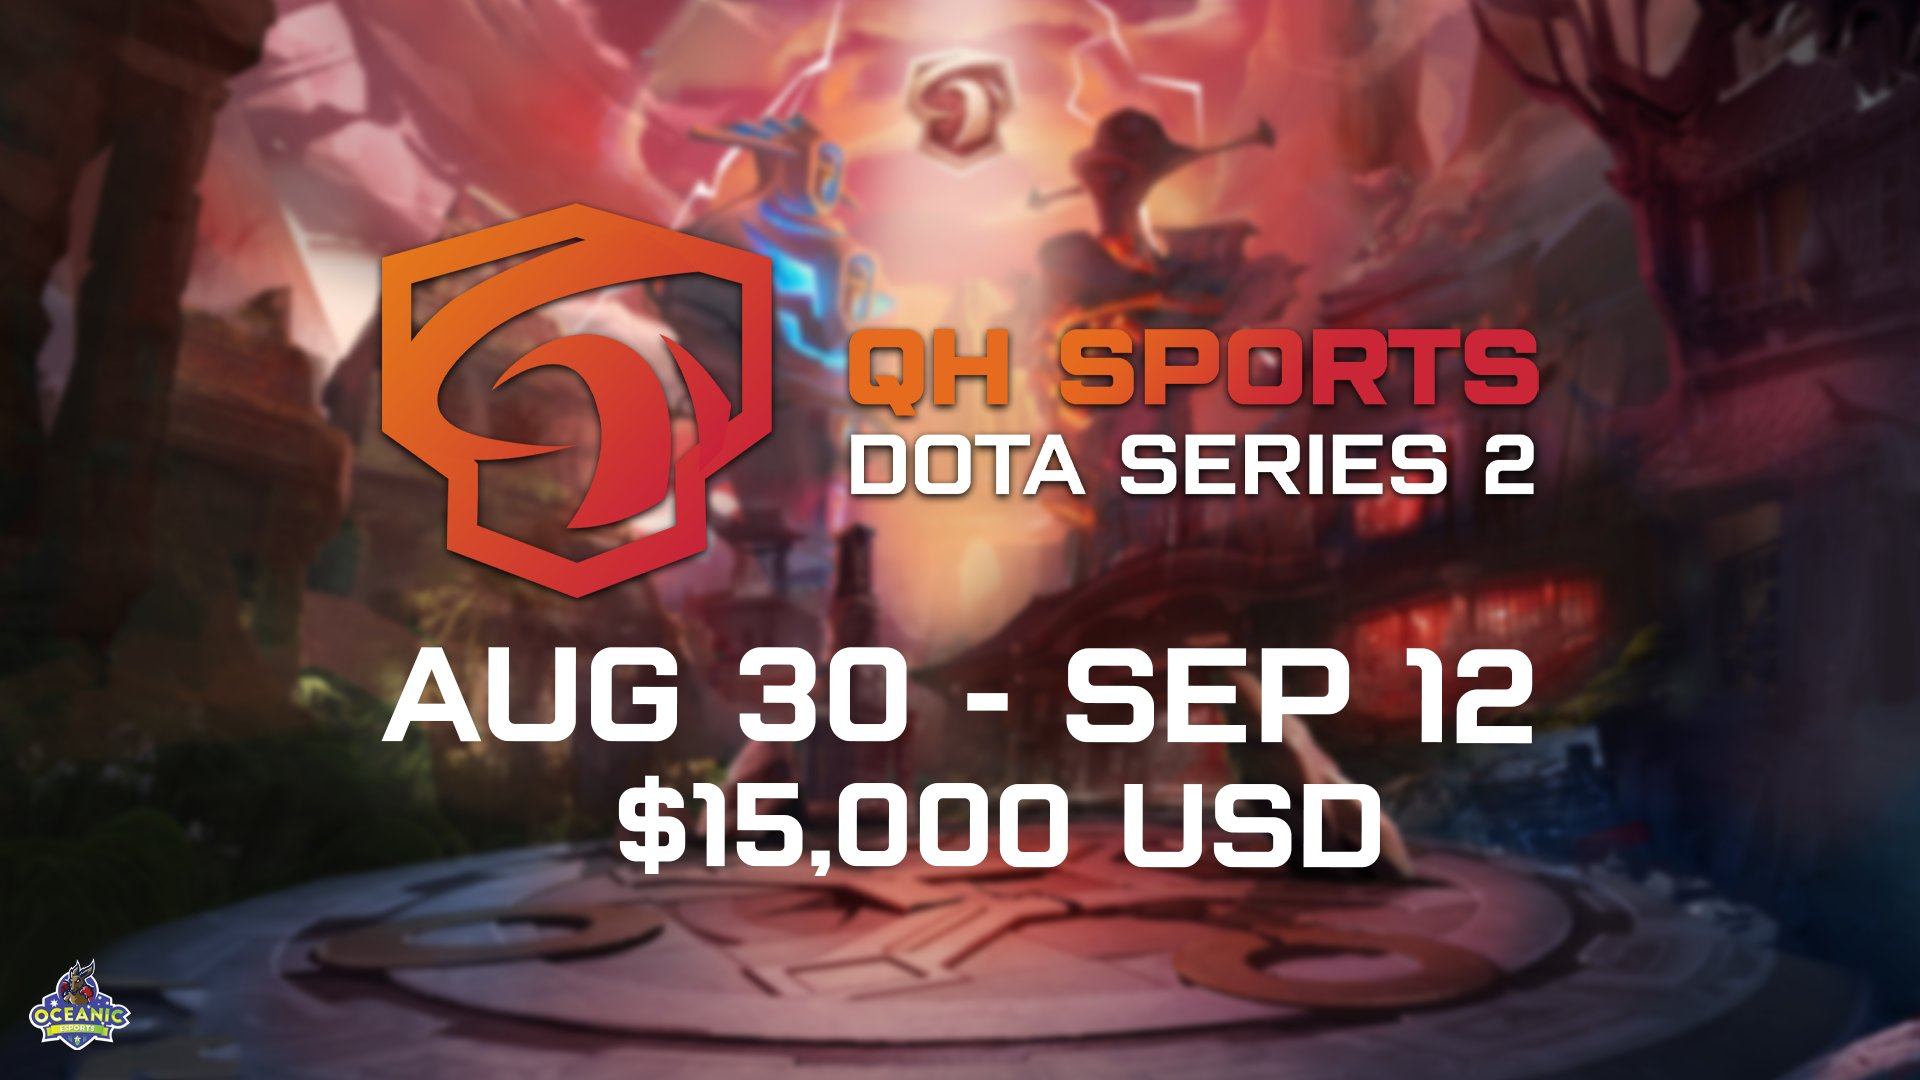 And Then There Were 6: The QH Sports Dota Series 2 Playoff Teams